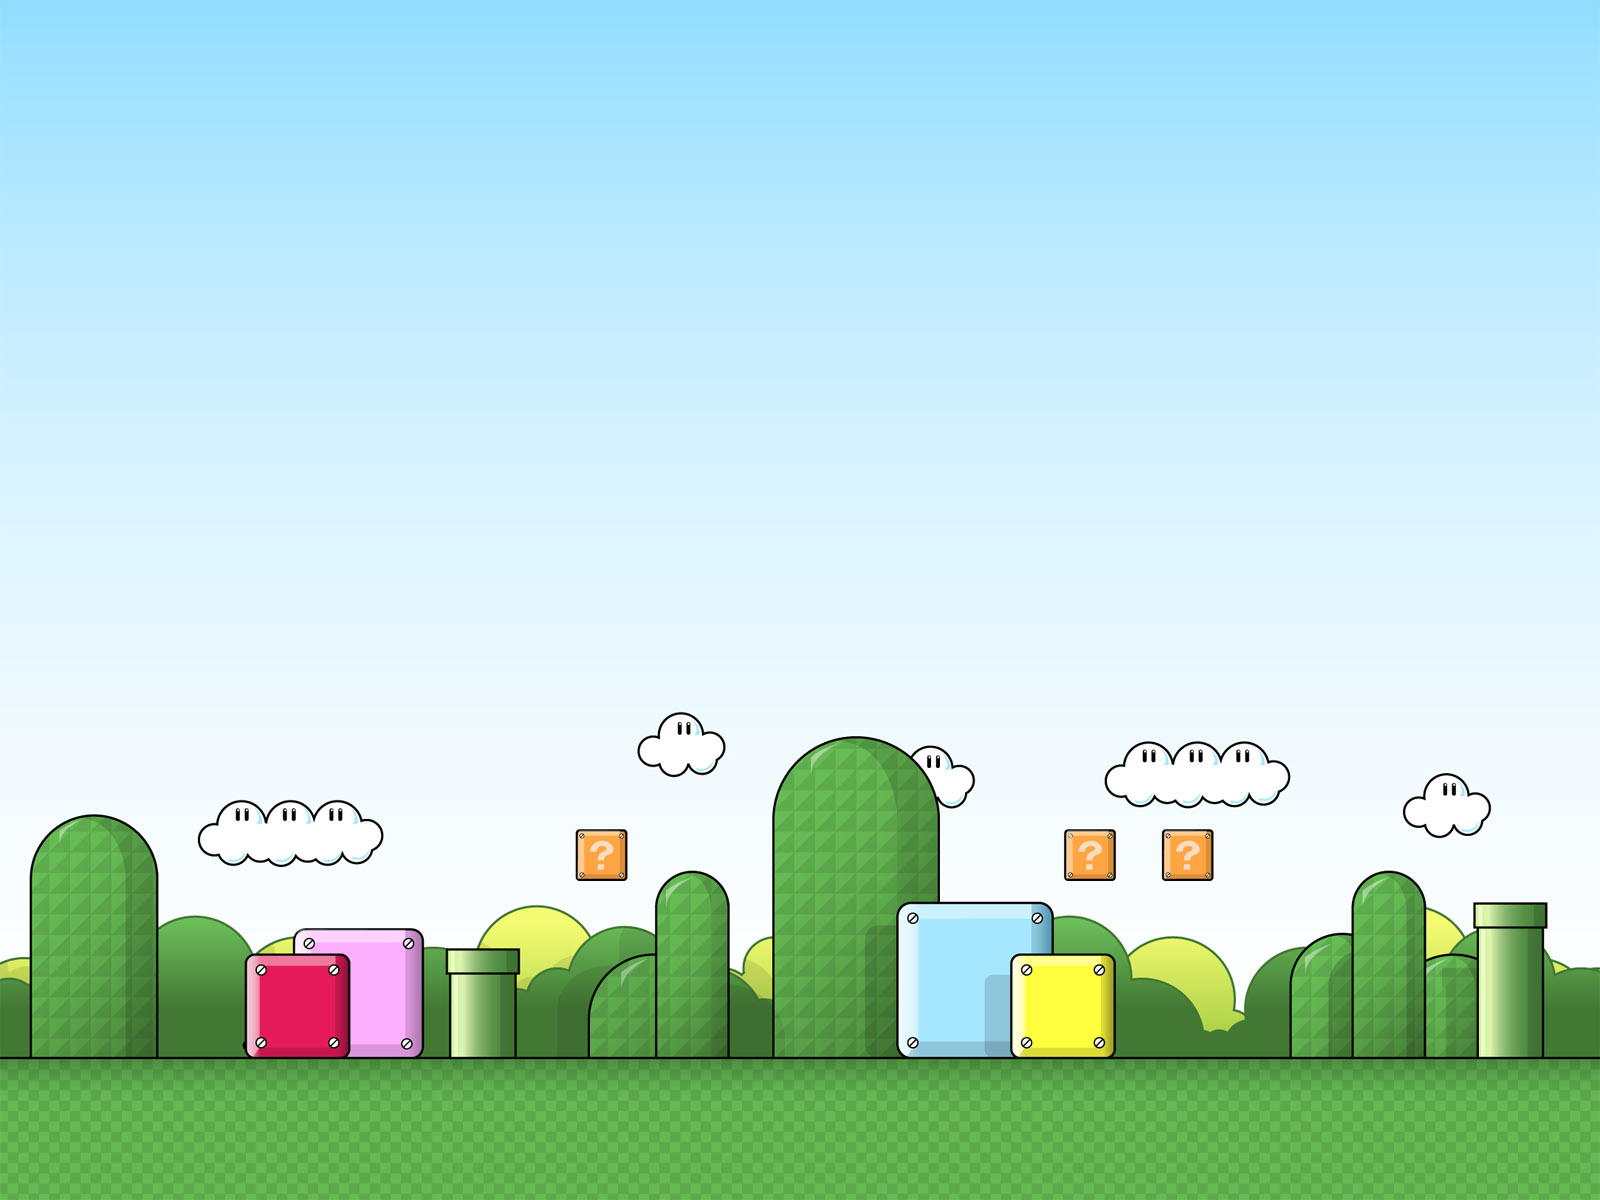 43 Super Mario Bros wallpapers for your PC, mobile phone, iPad, iPhone.